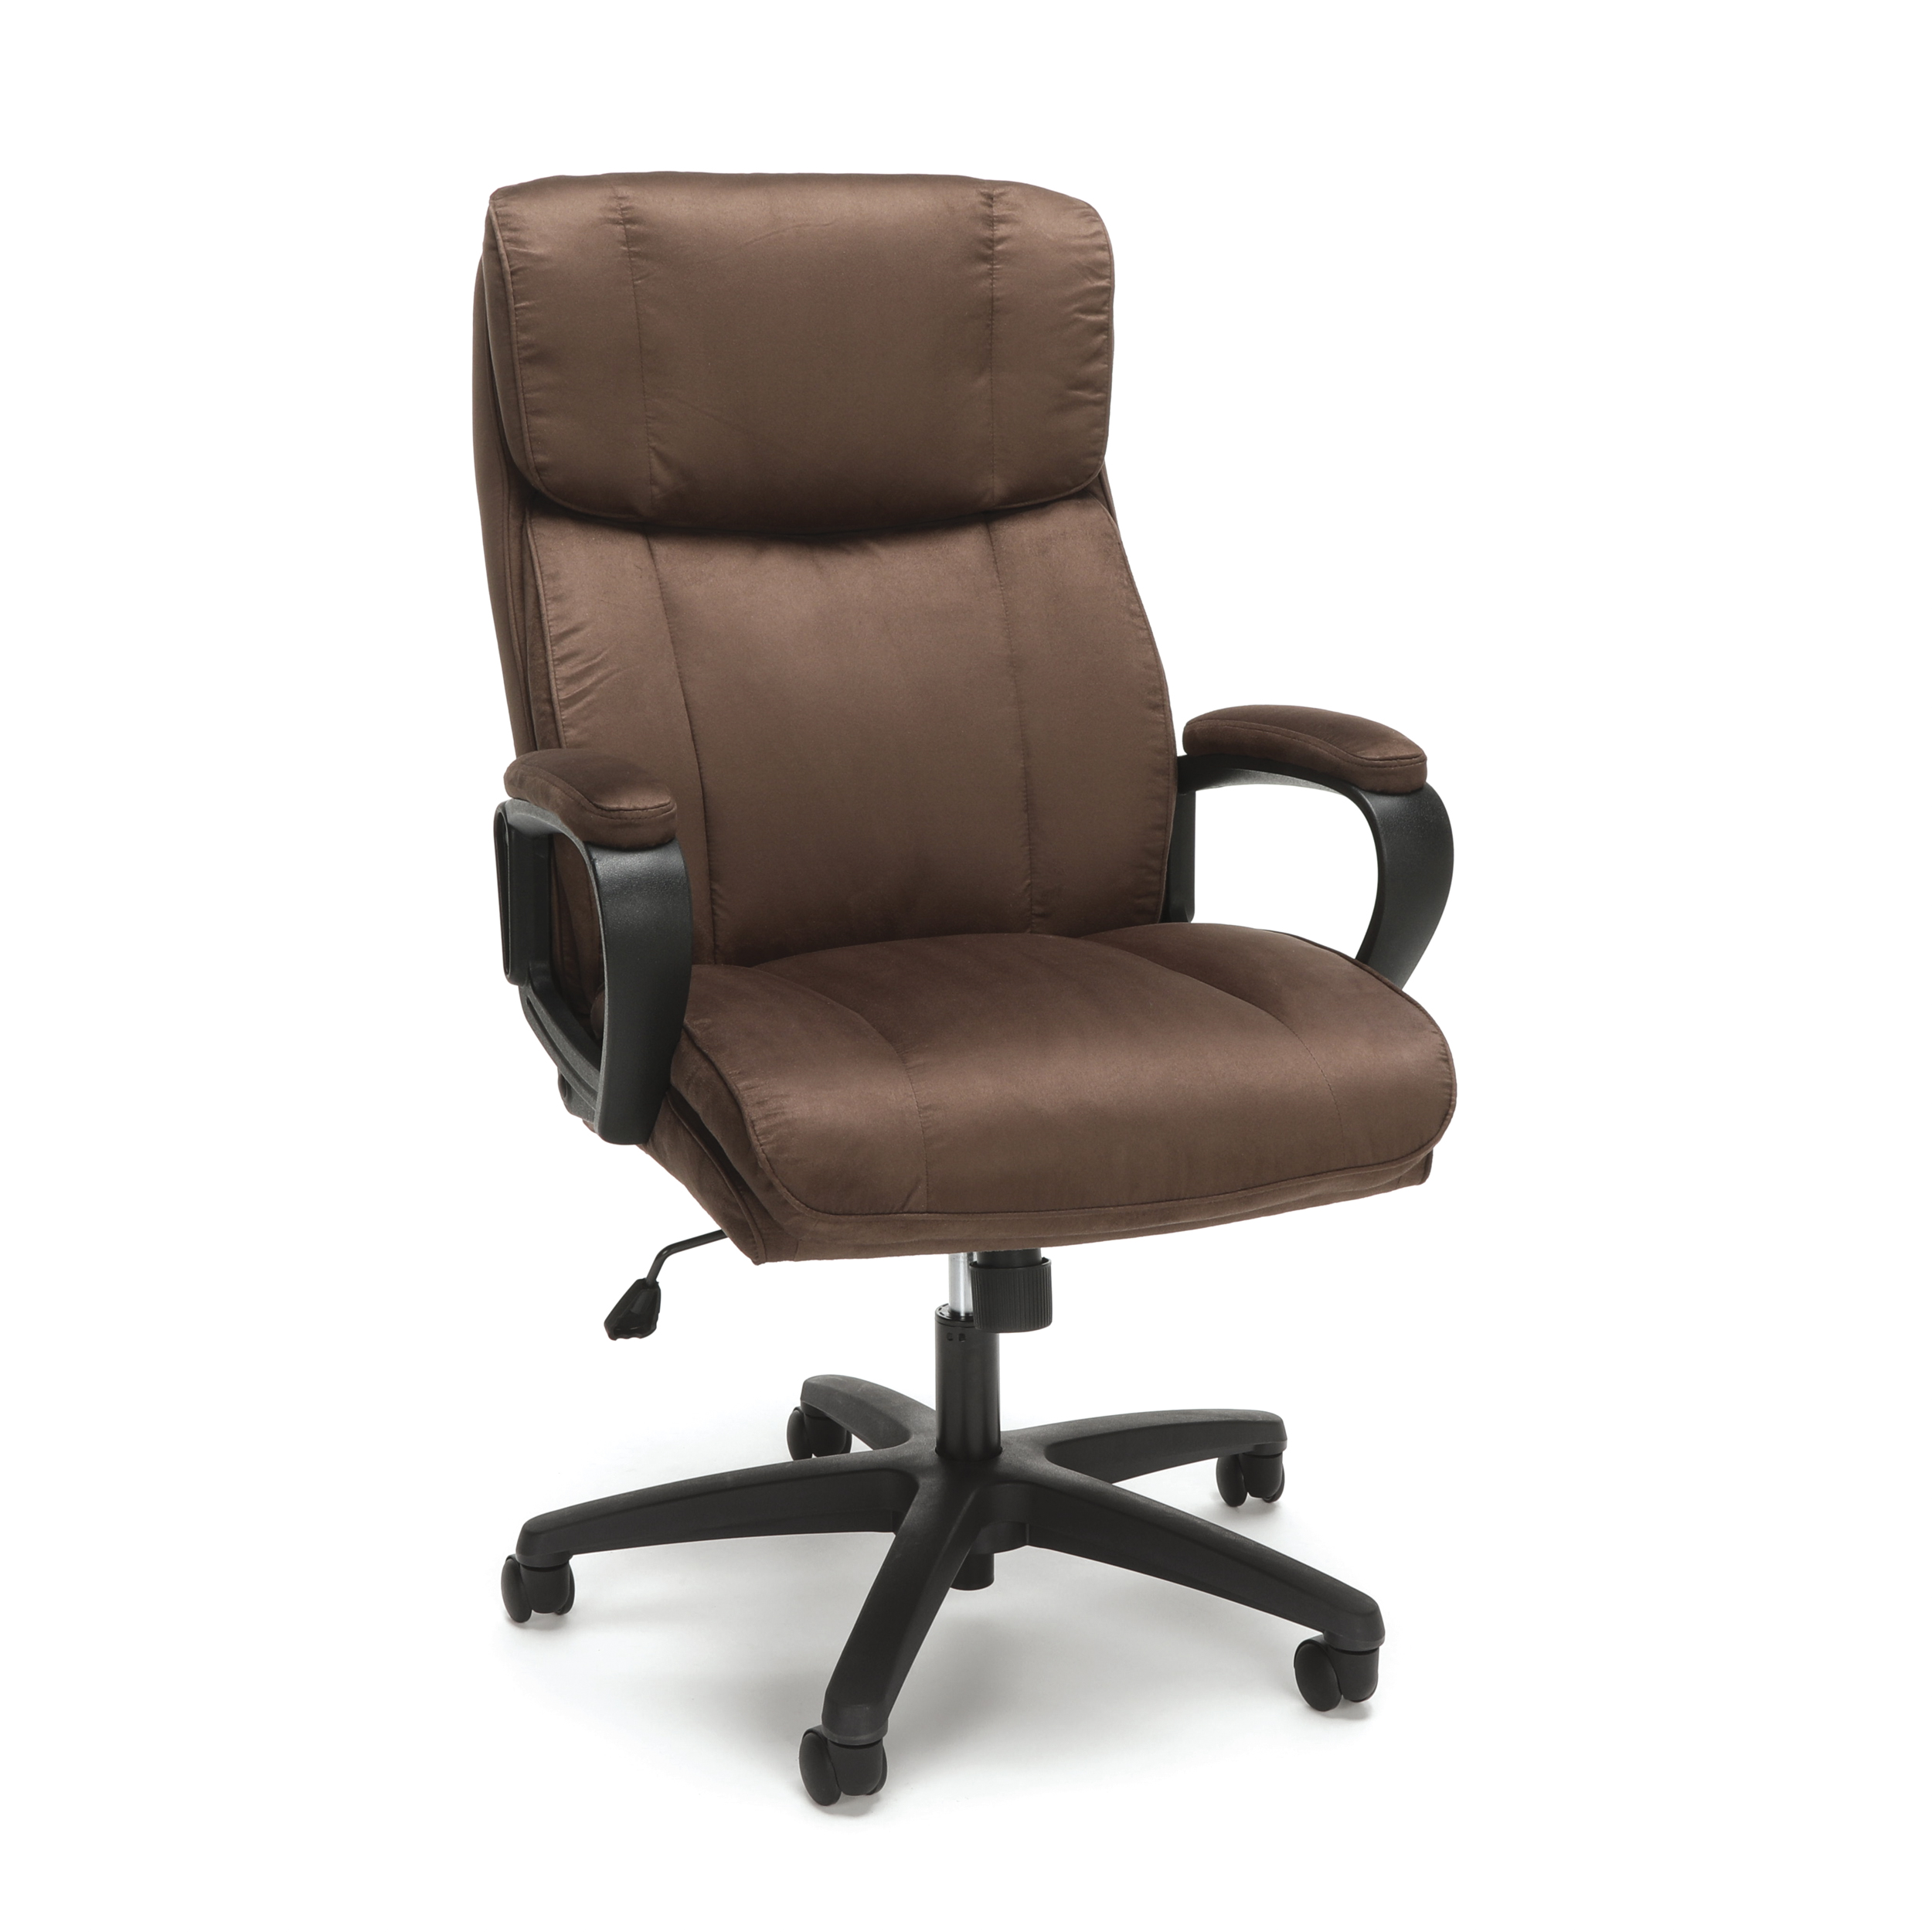 Essentials by OFM ESS-3081 Plush High-Back Microfiber Office Chair, Brown